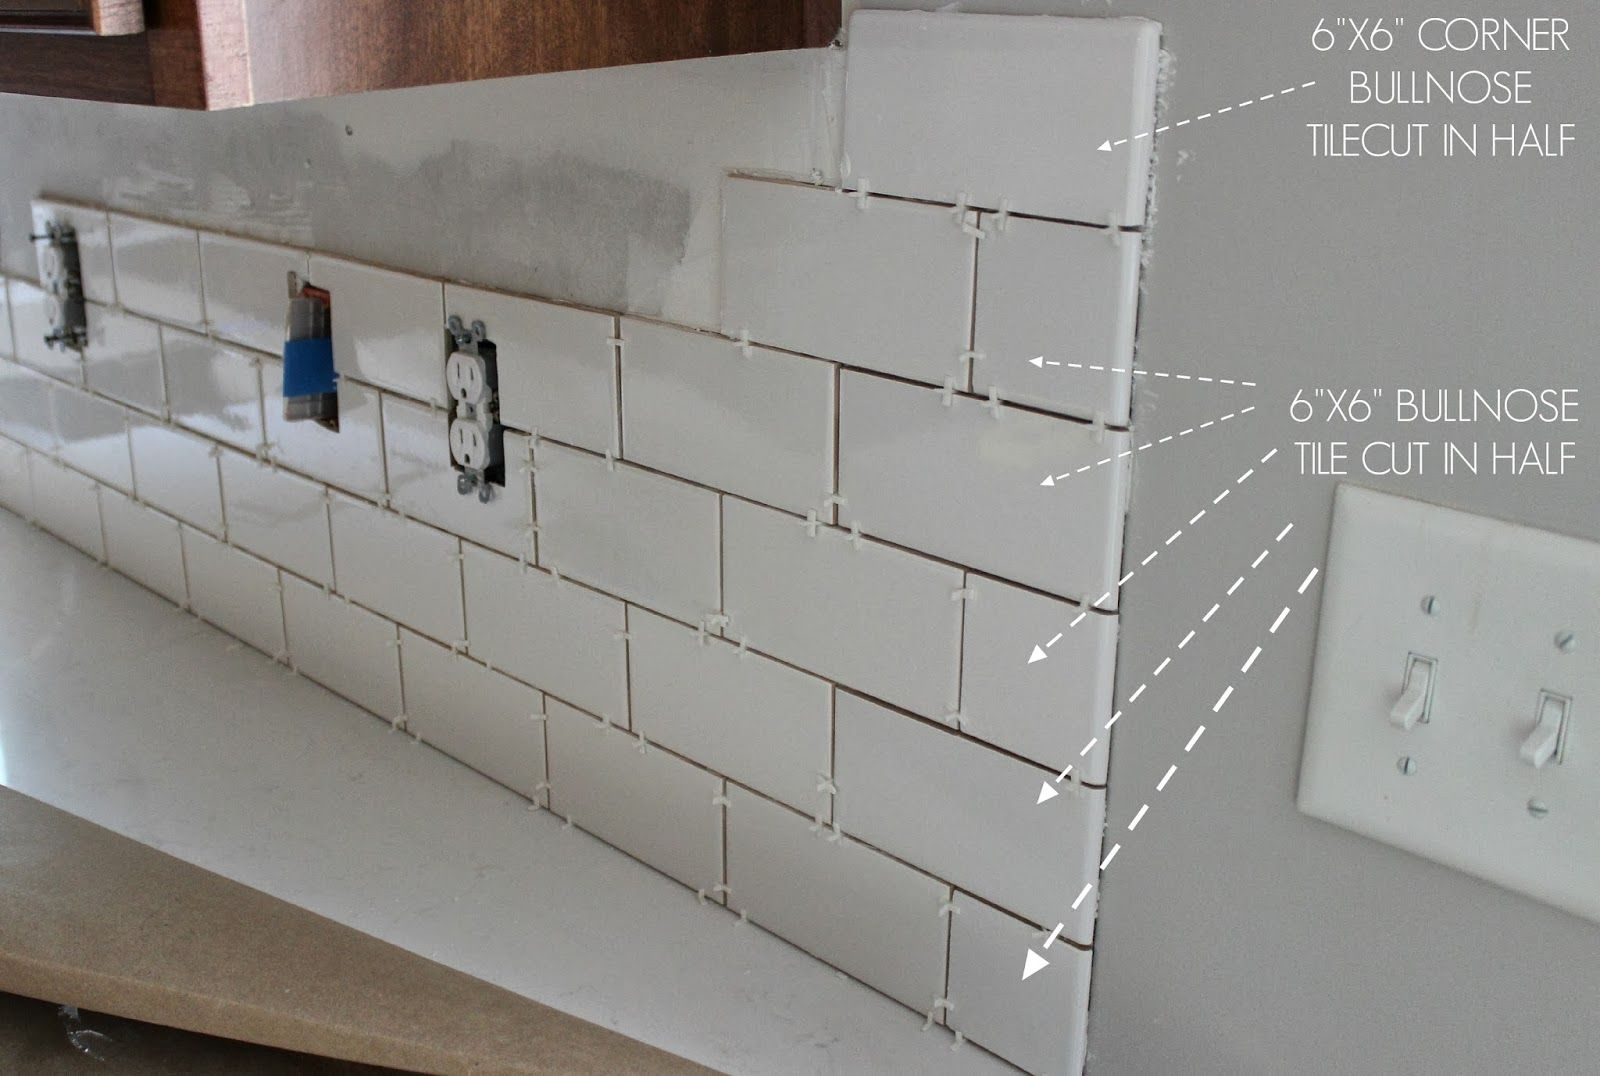 Kitchen chronicles a diy subway tile backsplash part 1 subway kitchen chronicles a diy subway tile backsplash part 1 dailygadgetfo Gallery